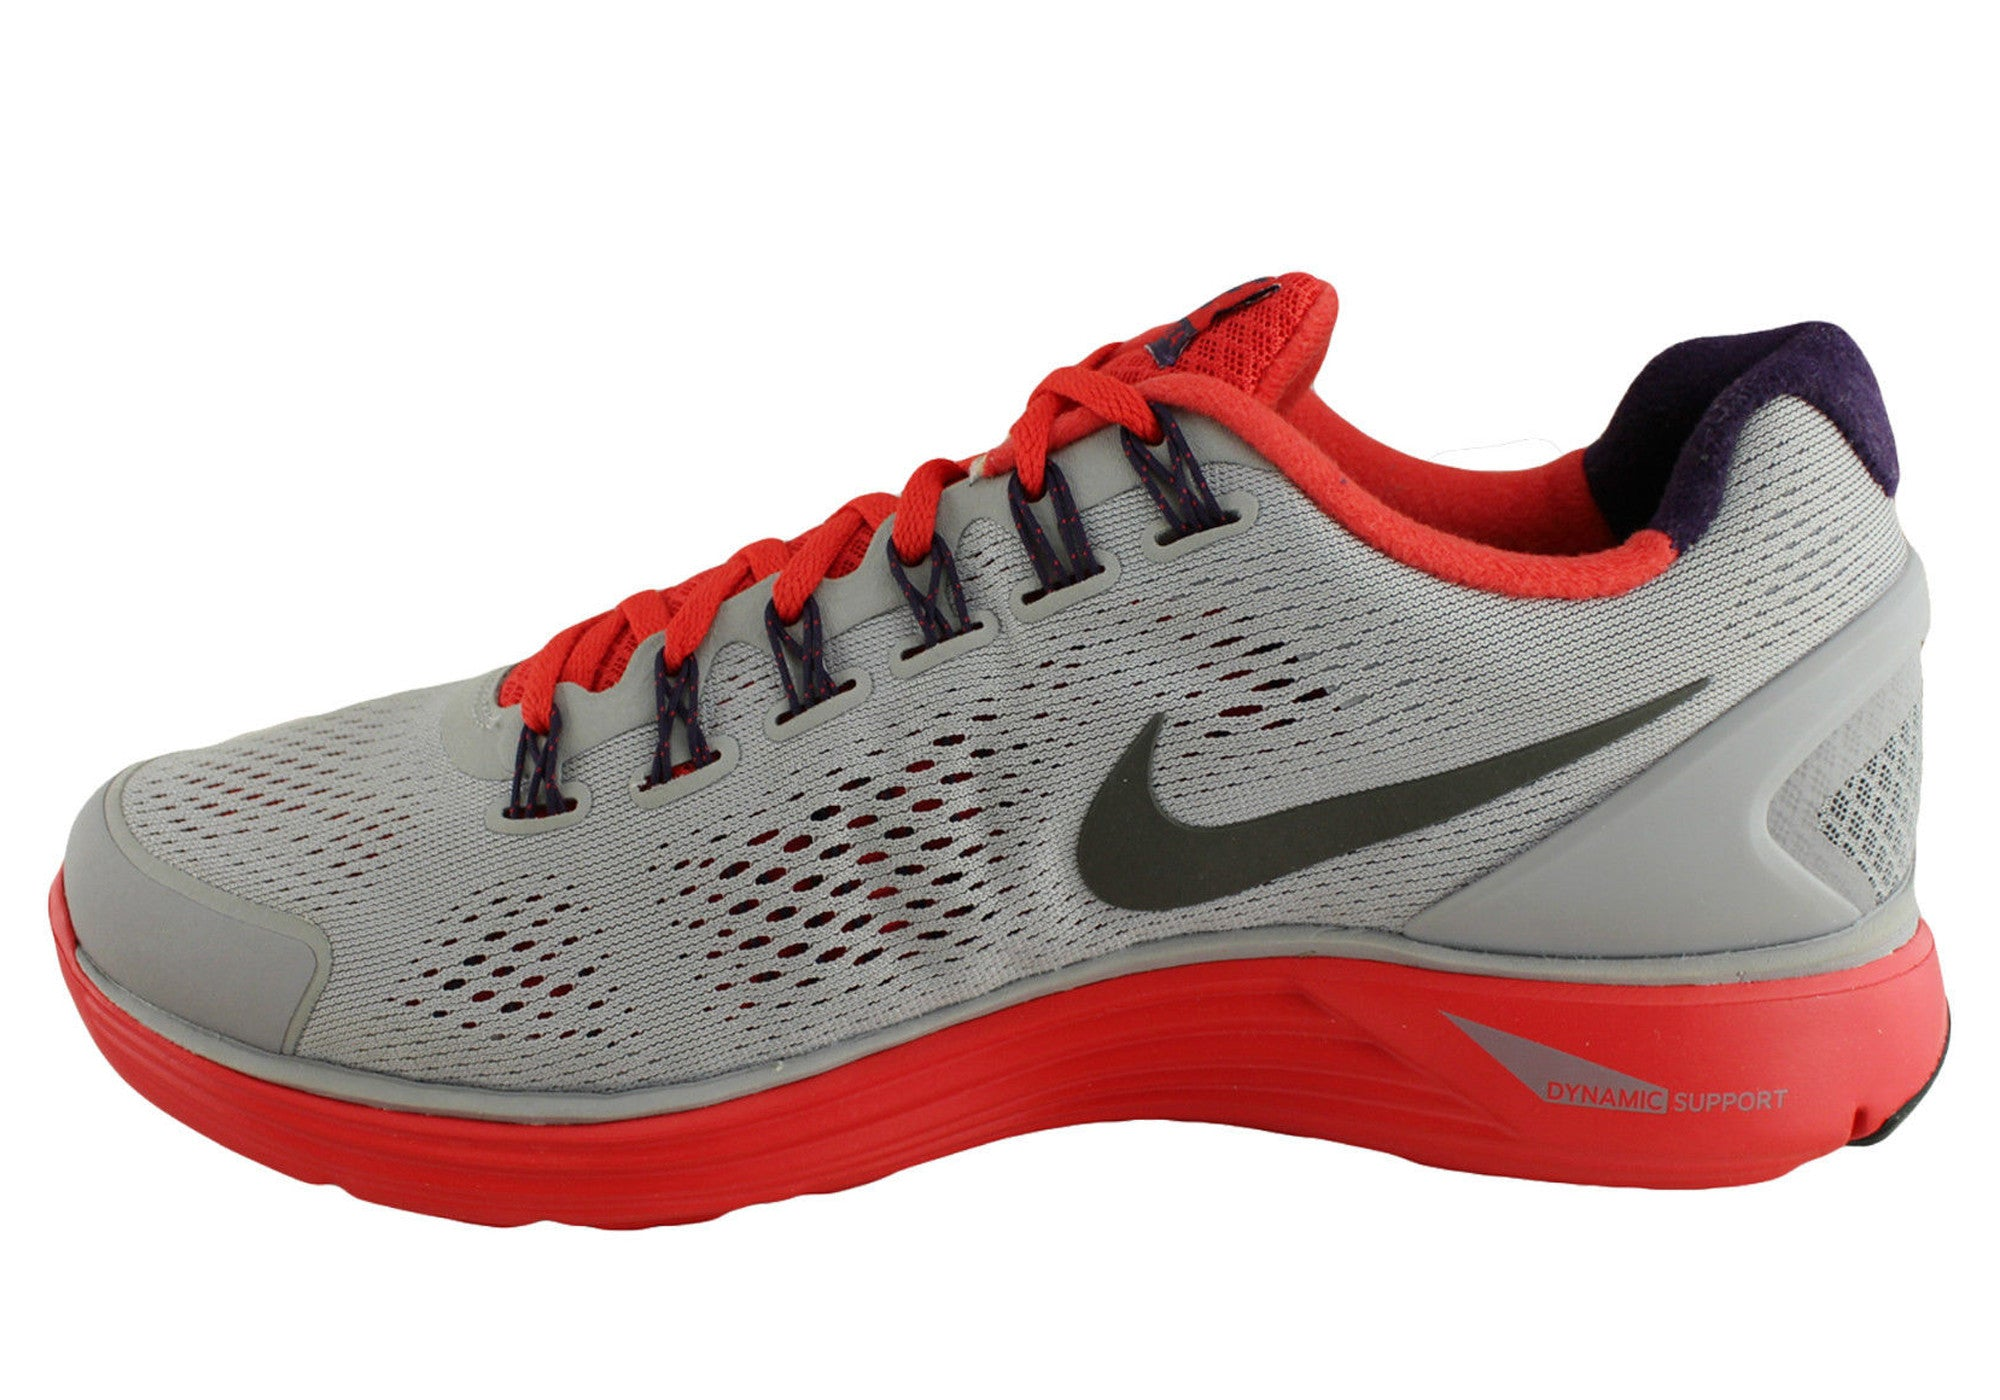 Nike Lunarglide+ 4 Mens Running/Sports Shoes